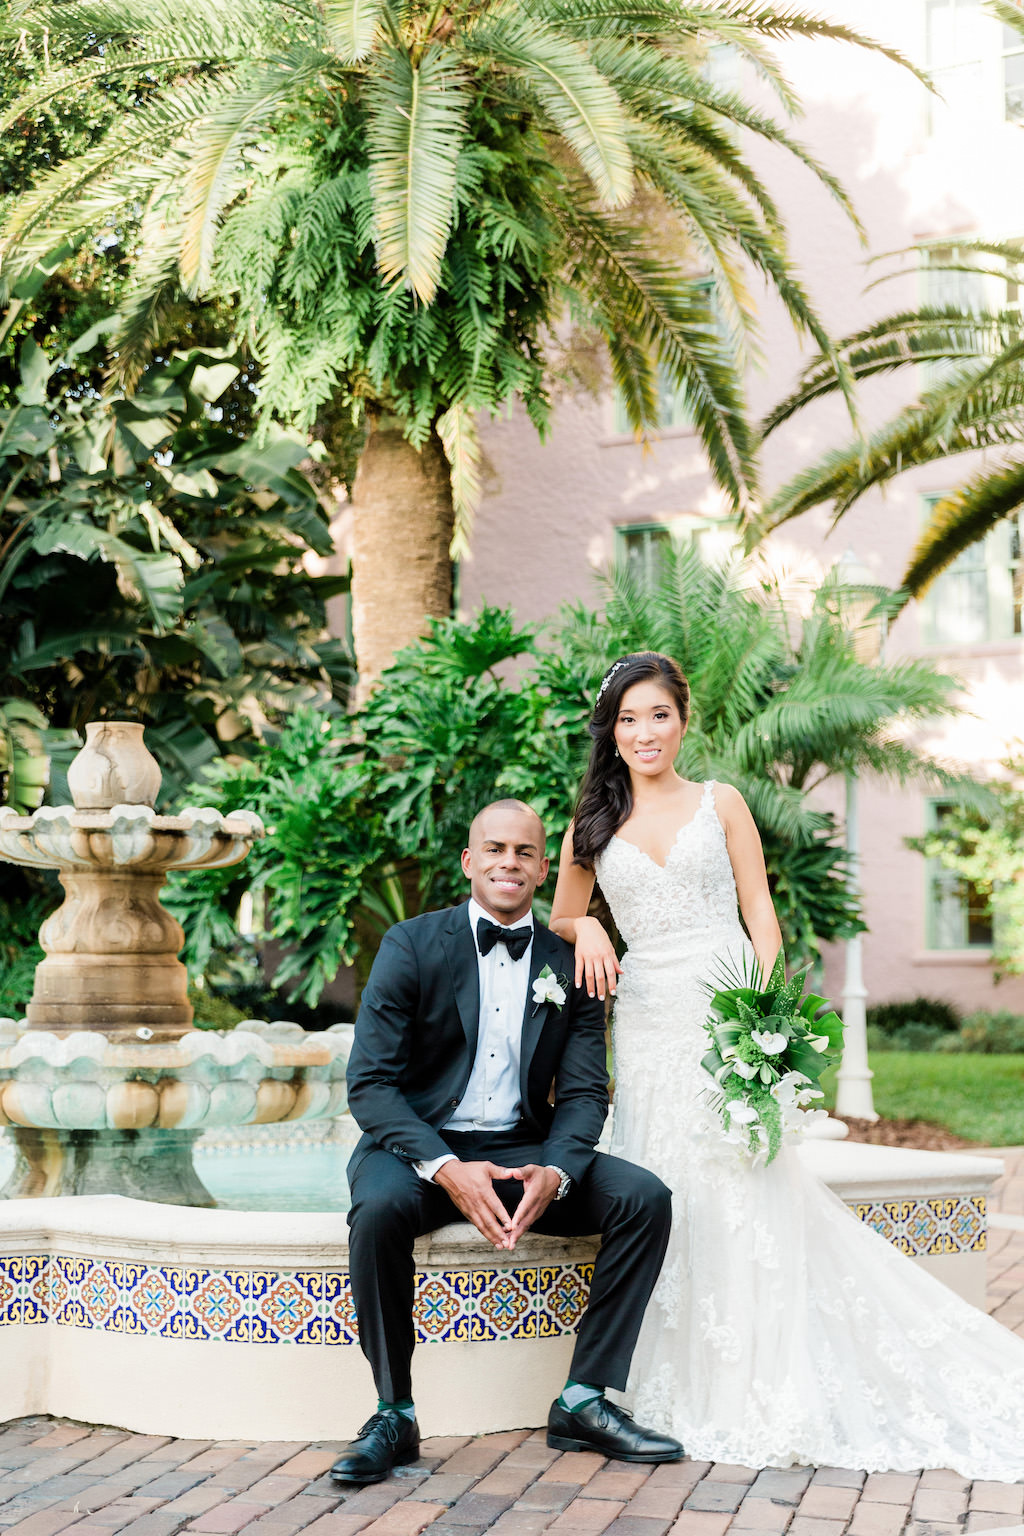 Modern Bride and Groom Wedding Portrait in Downtown St. Pete Resort in the Tea Garden at The Vinoy Renaissance Resort & Golf Club | White and Green Floral Bridal Bouquet by Tampa Bay Florist Bruce Wayne Florals